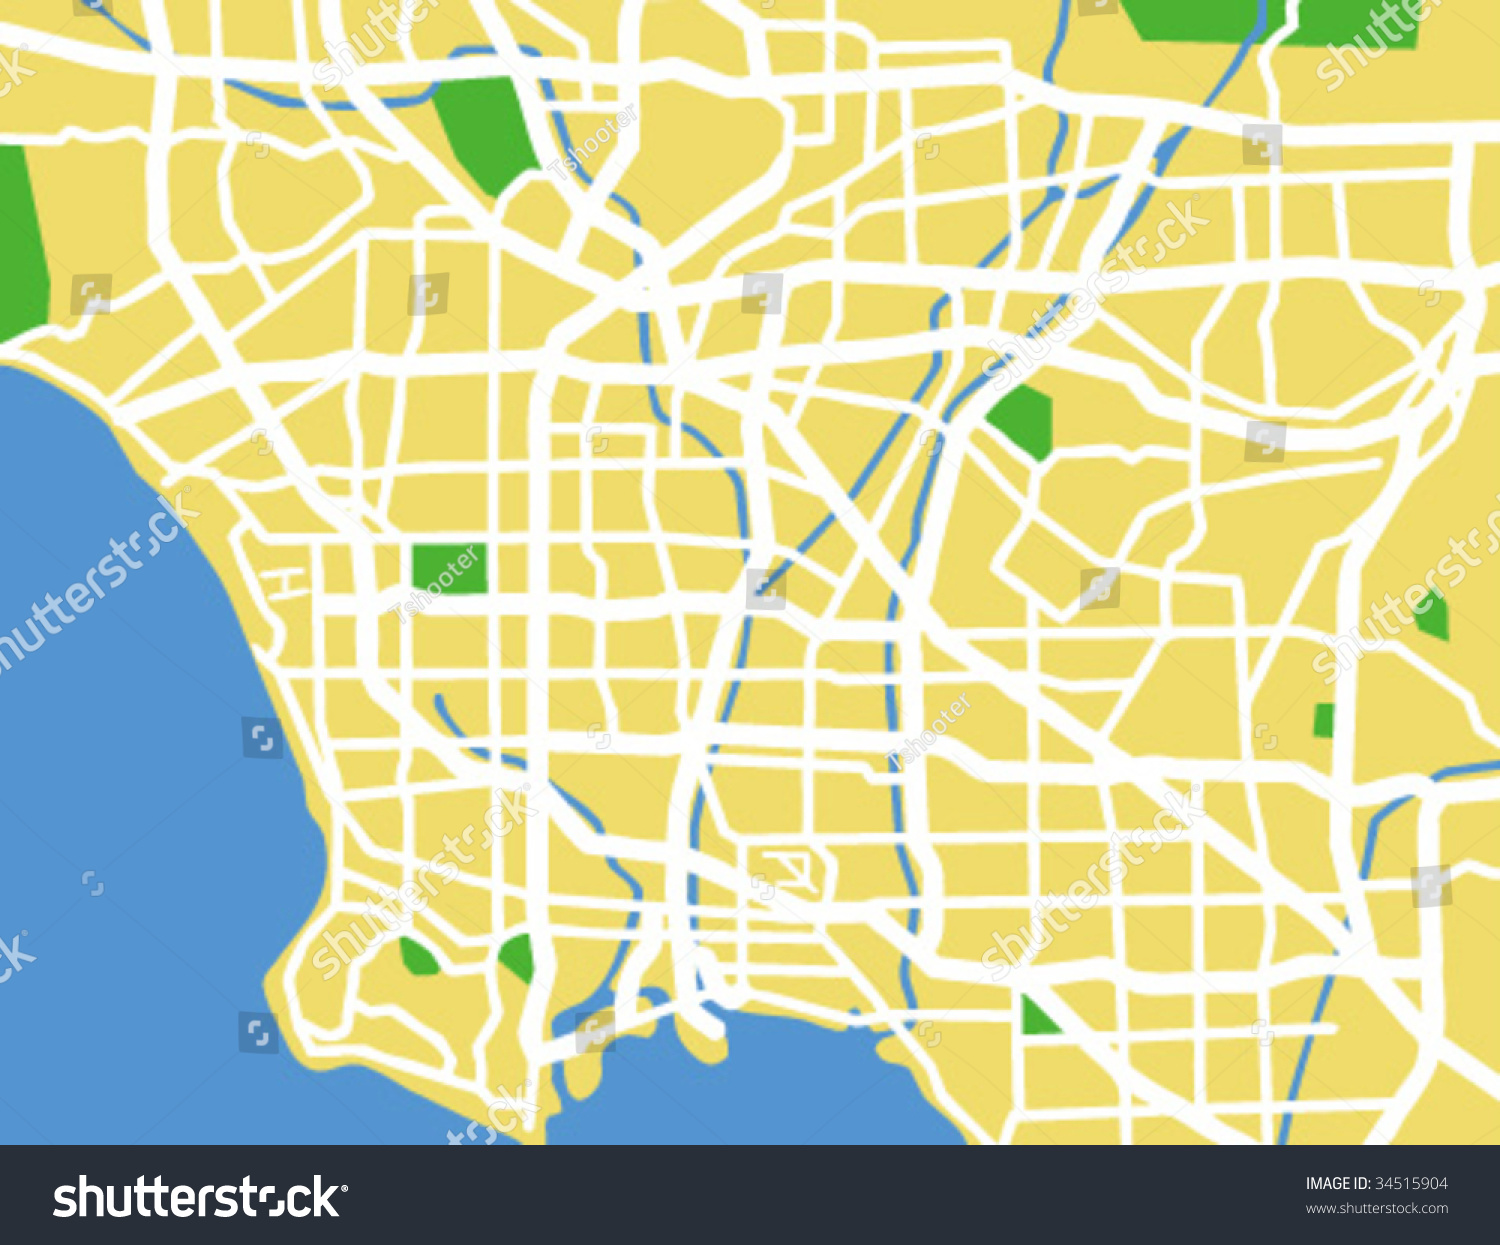 Los Angeles Vector Map Vector Get Free Images About World Maps - Los angeles in map